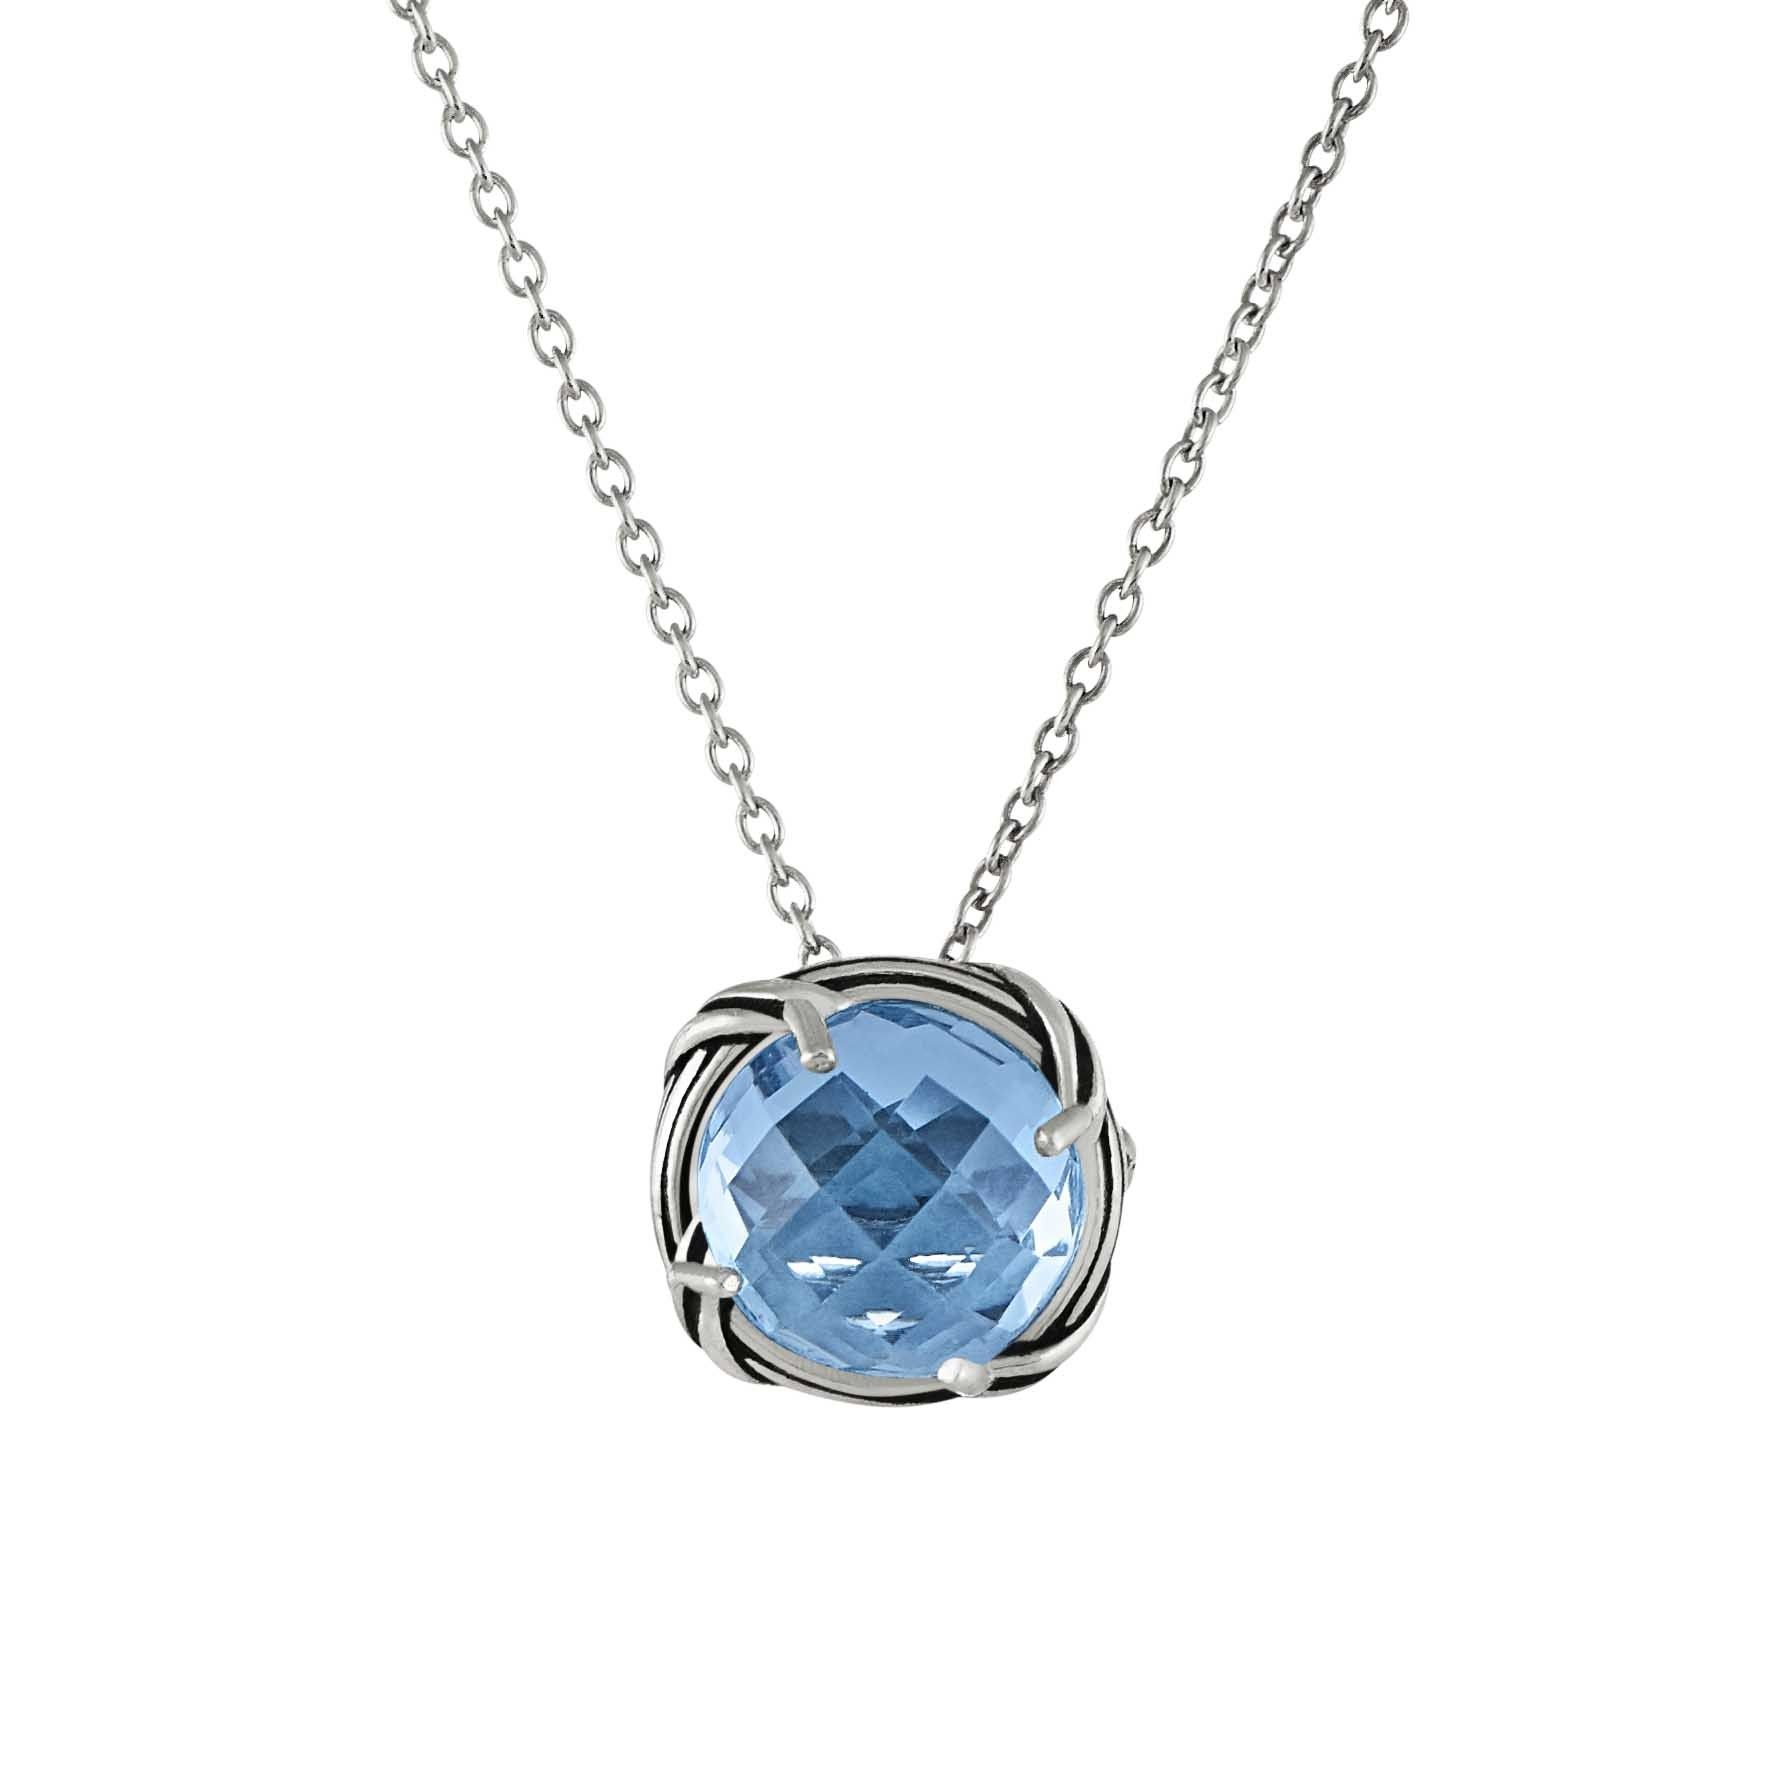 d071895b6bad Peter Thomas Roth Fine Jewelry Fantasies Blue Topaz Necklace in sterling  silver